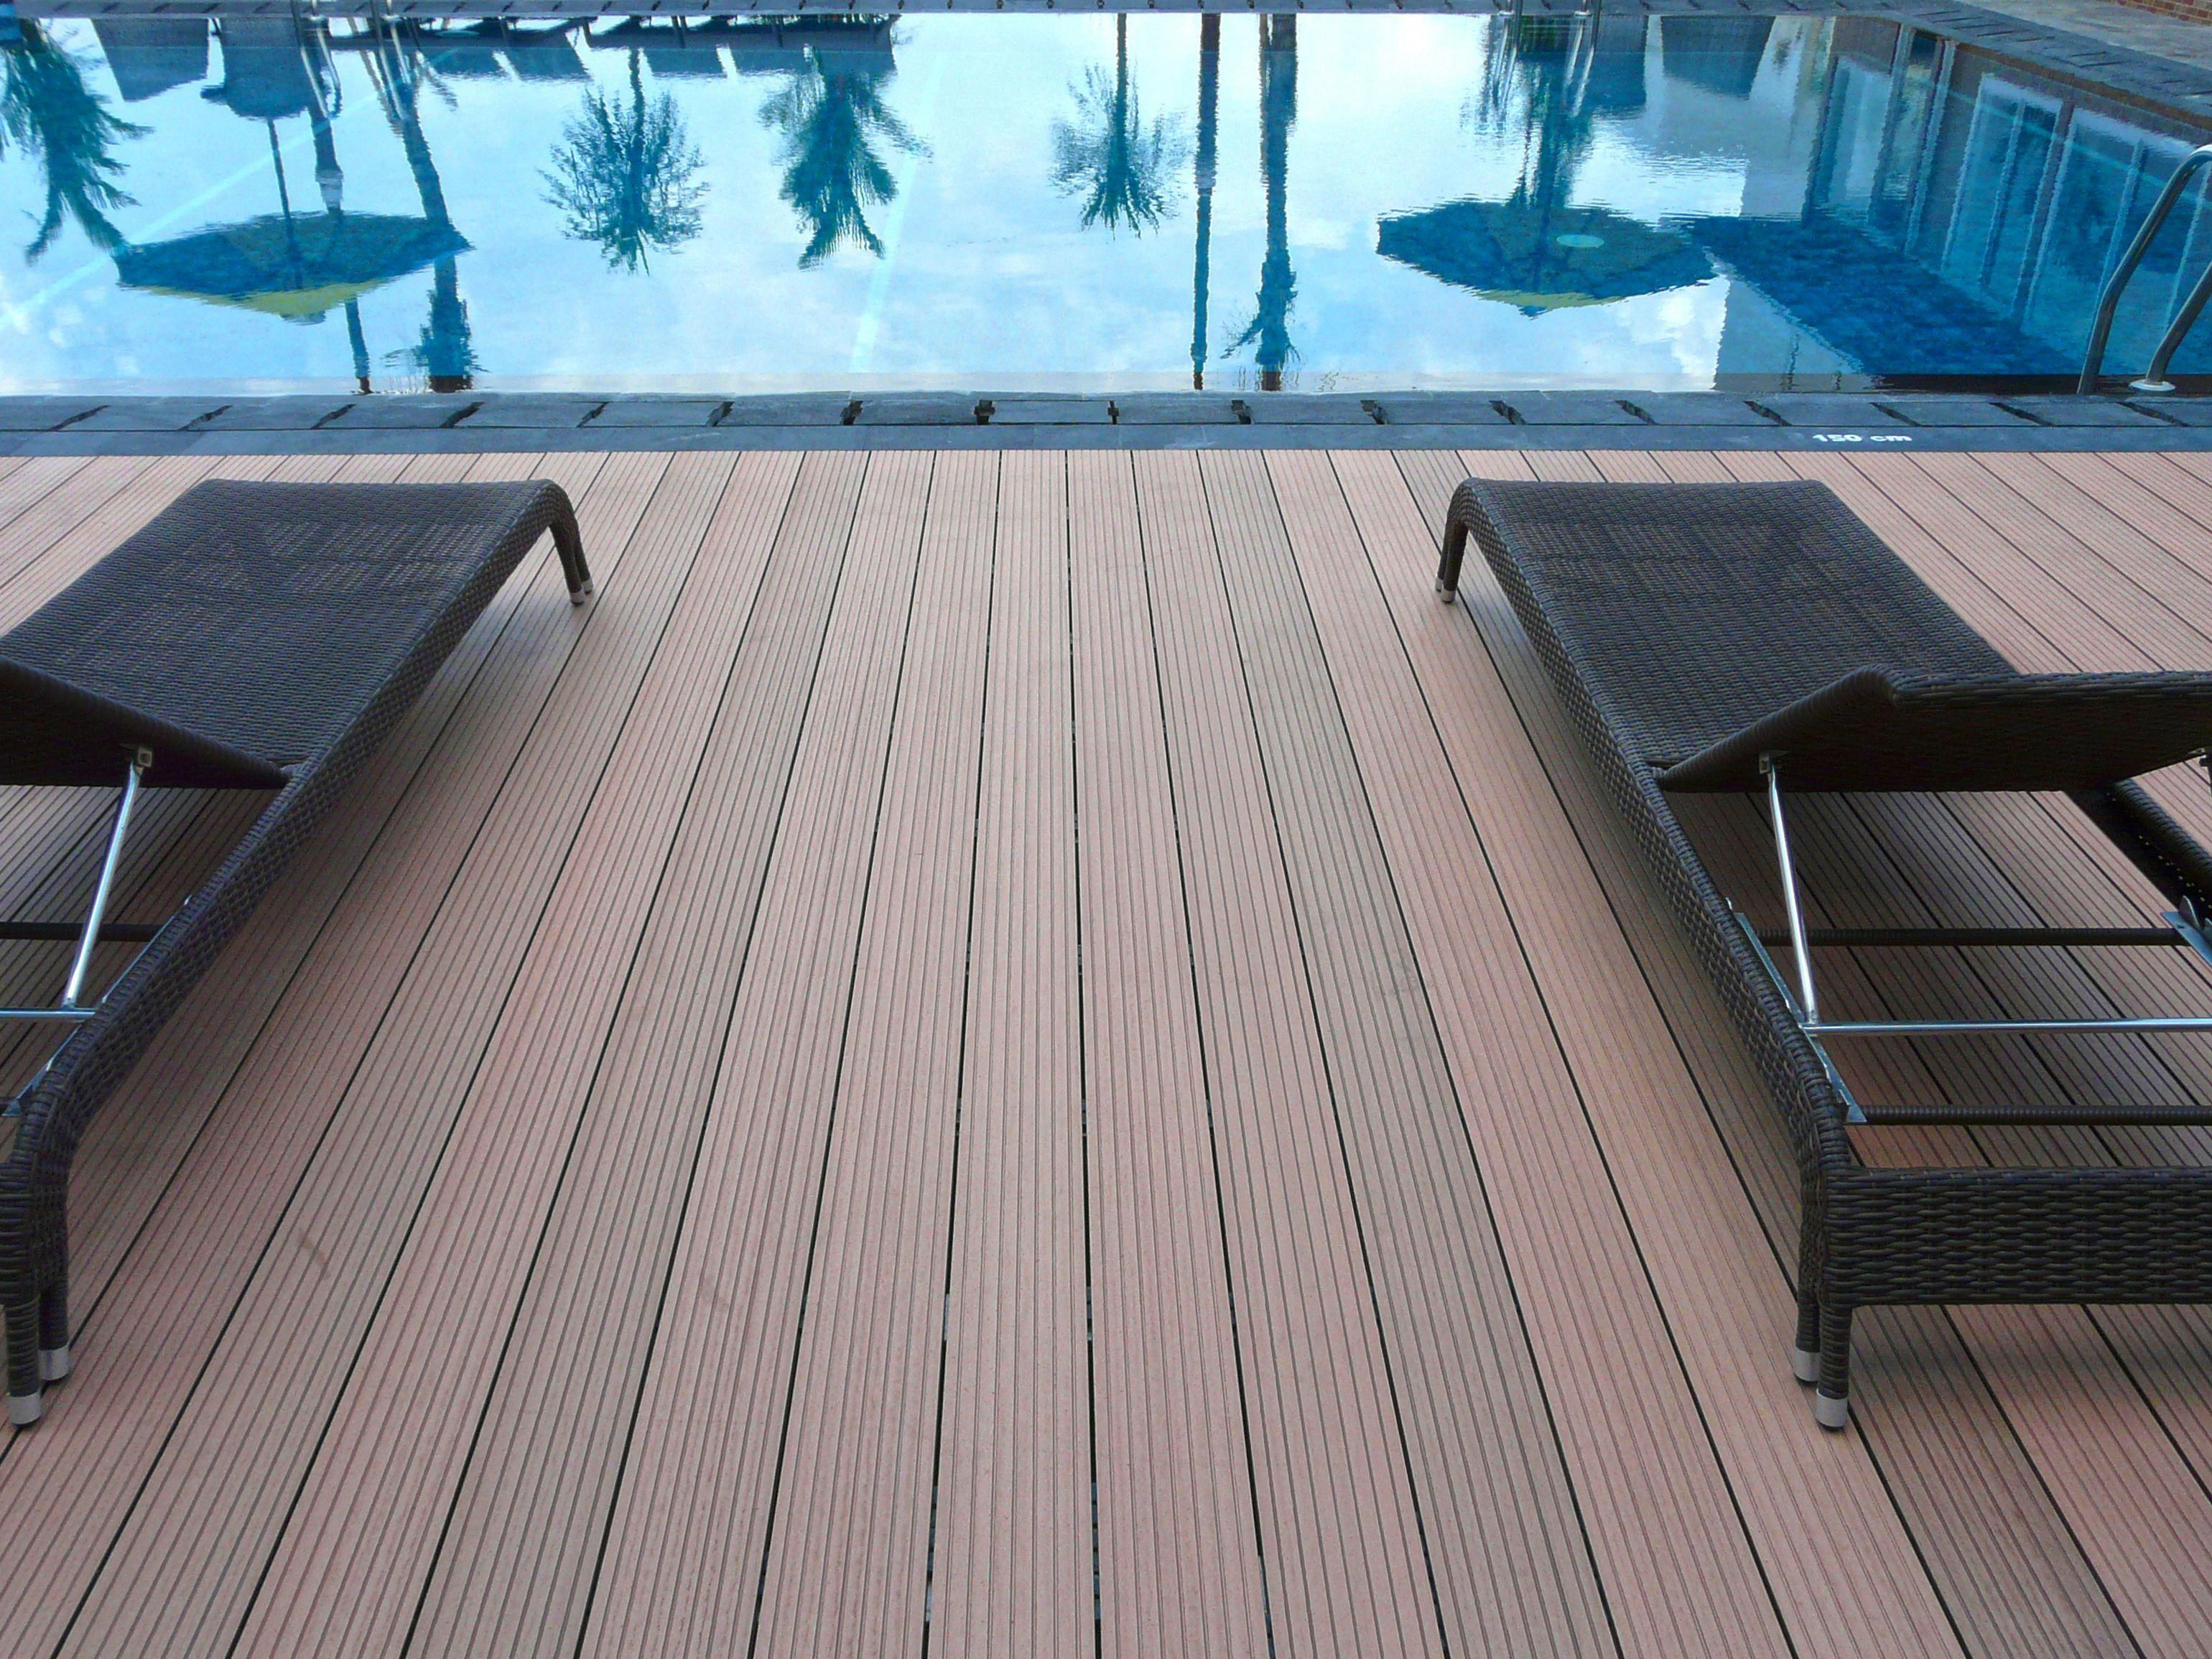 Cheap Build 24 Foot Pool Deck Buildadeckcheap Wood Pool Deck Building A Deck Pool Deck Floor